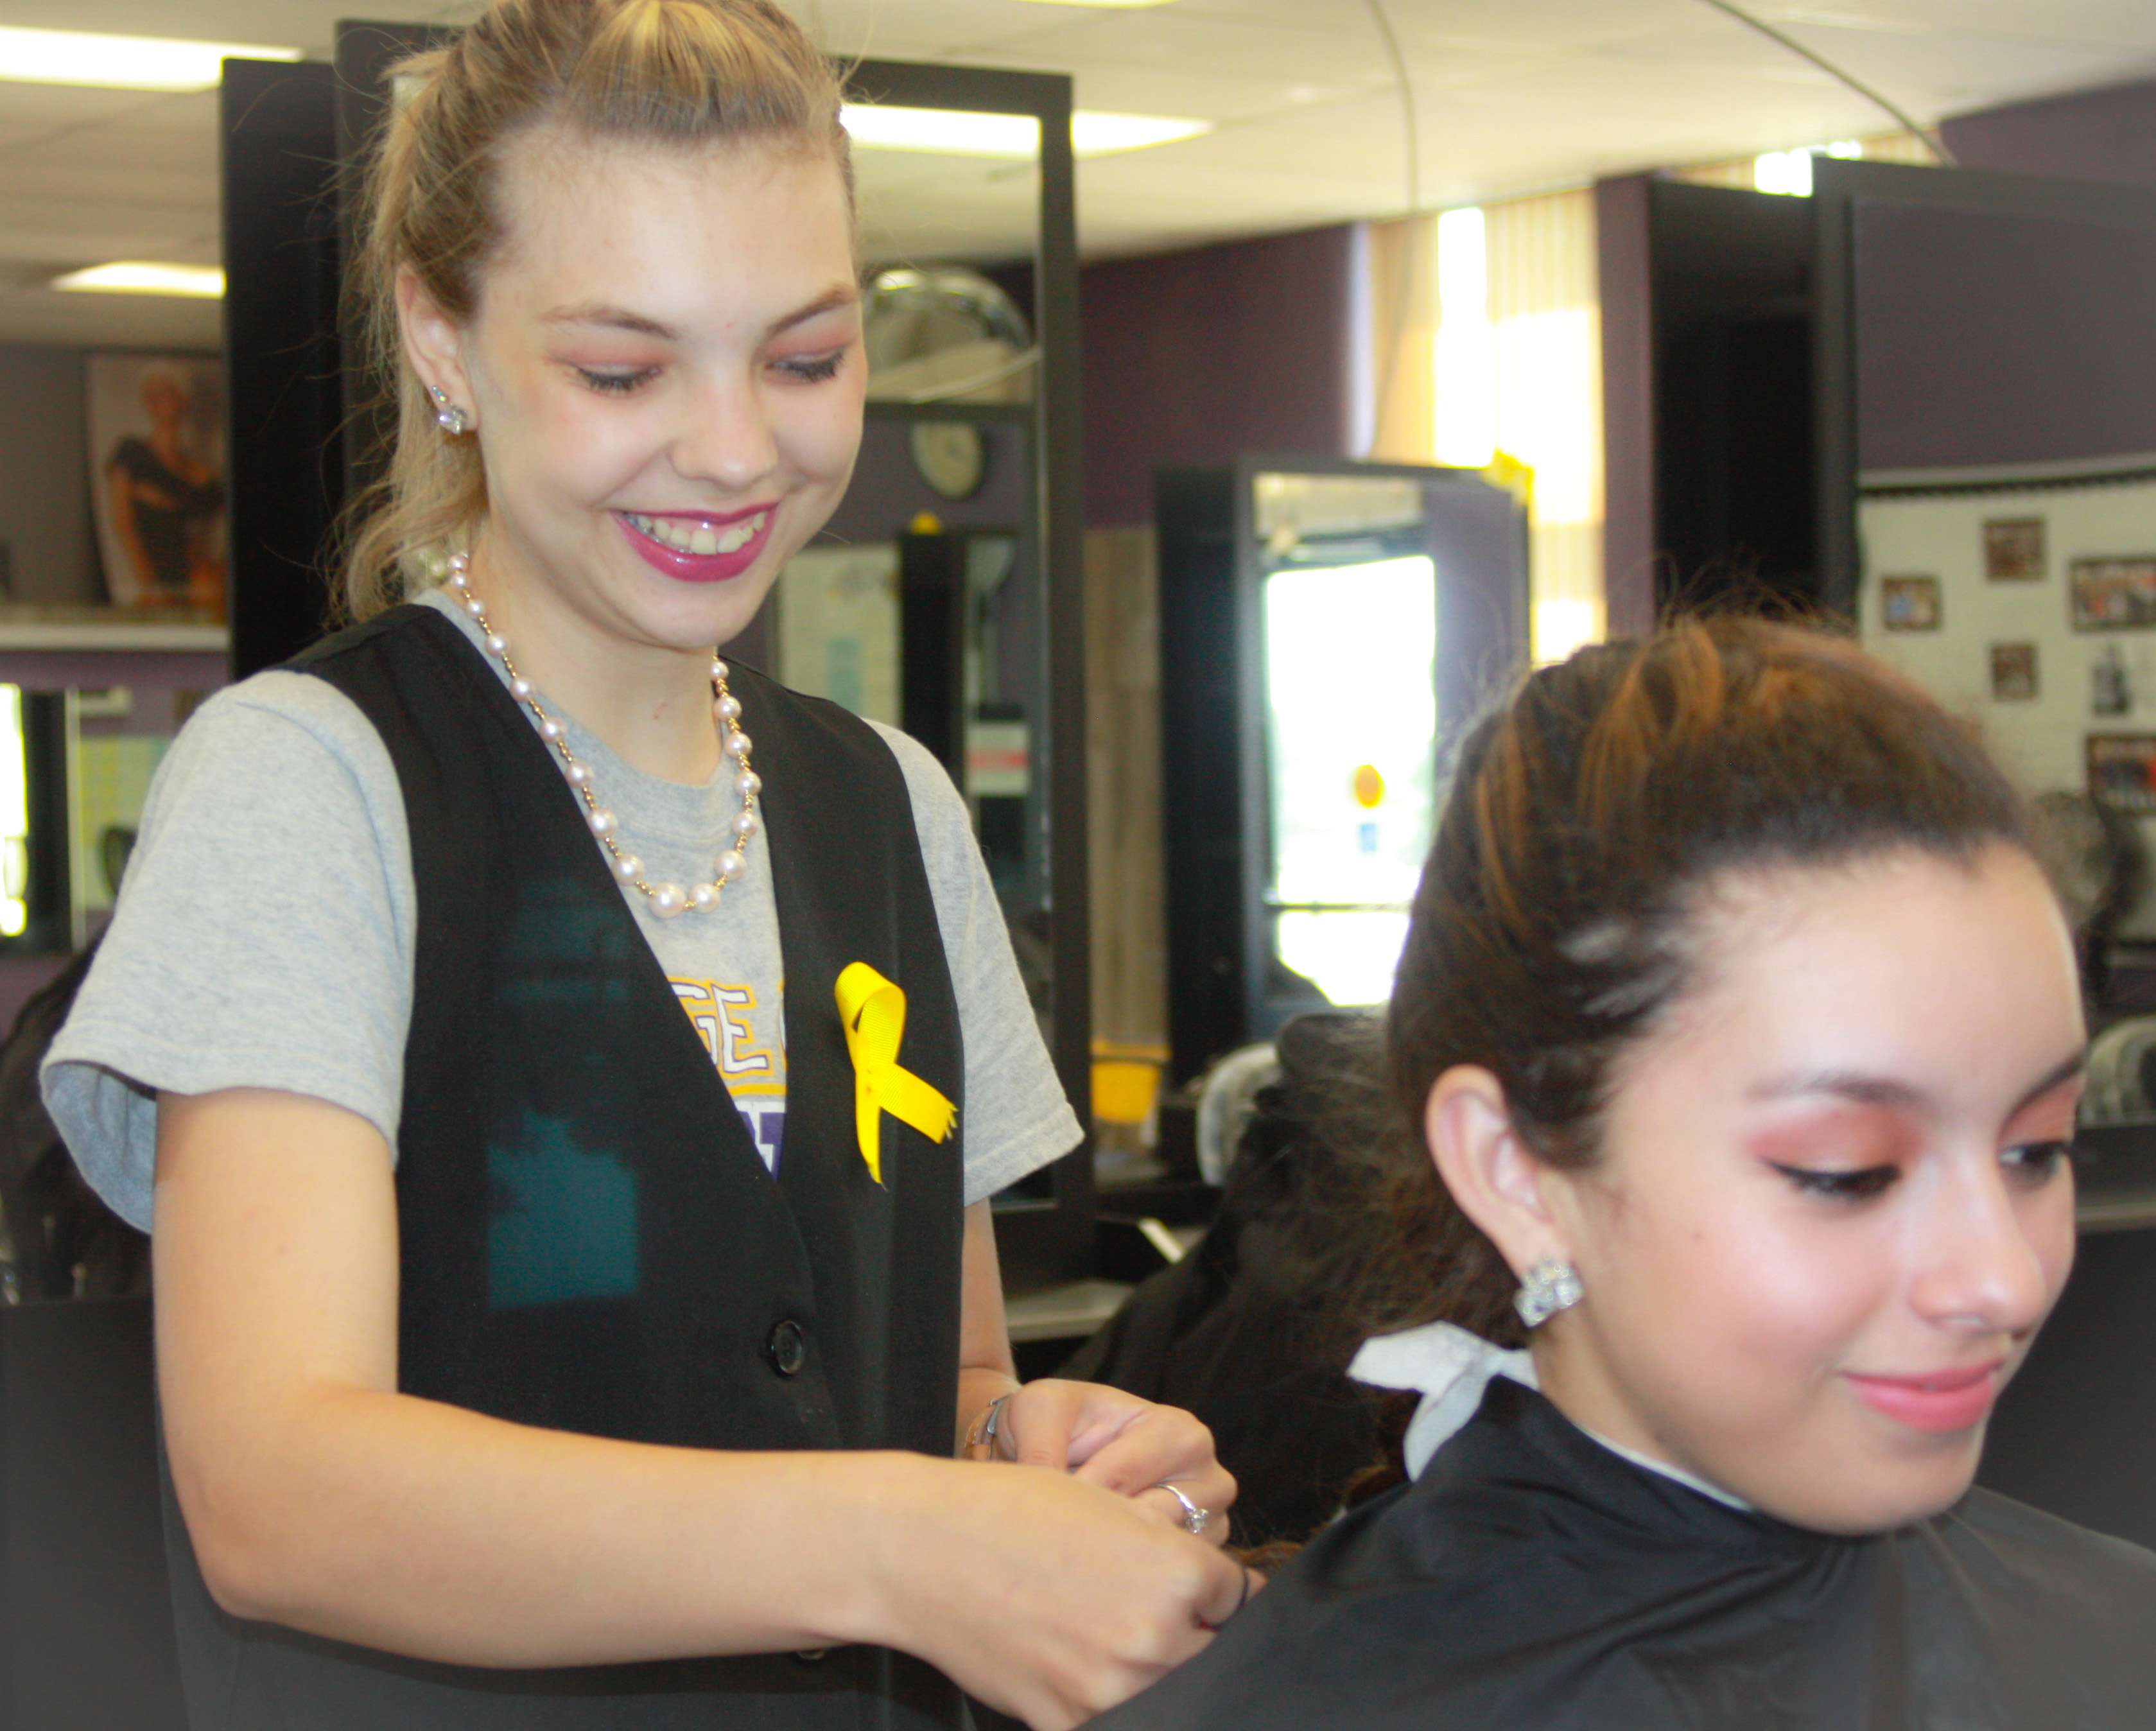 Sierra McCain works on a client in the DC3 Cosmetology salon.